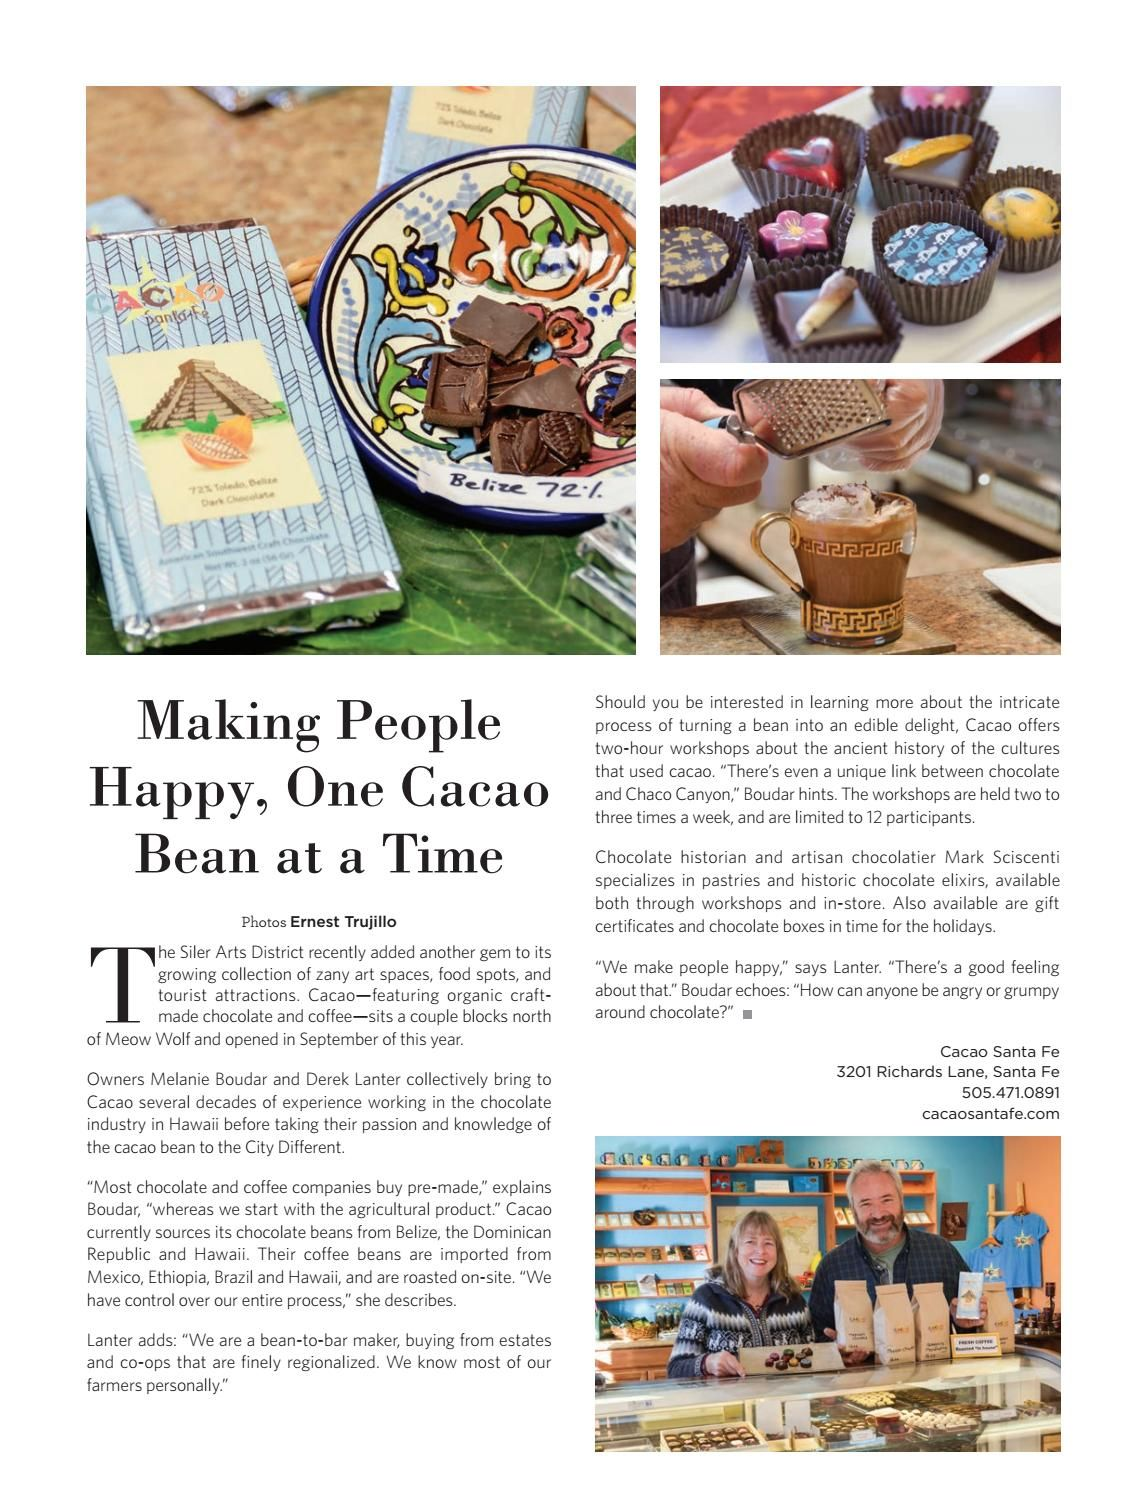 Making People Happy, One Cacao Bean at a Time The Siler Arts District recently added another gem to its growing collection of zany art spaces, food spots, and tourist attractions. Cacao—featuring organic craft-made chocolate and coffee—sits a couple blocks north of Meow Wolf and opened in September of this year.